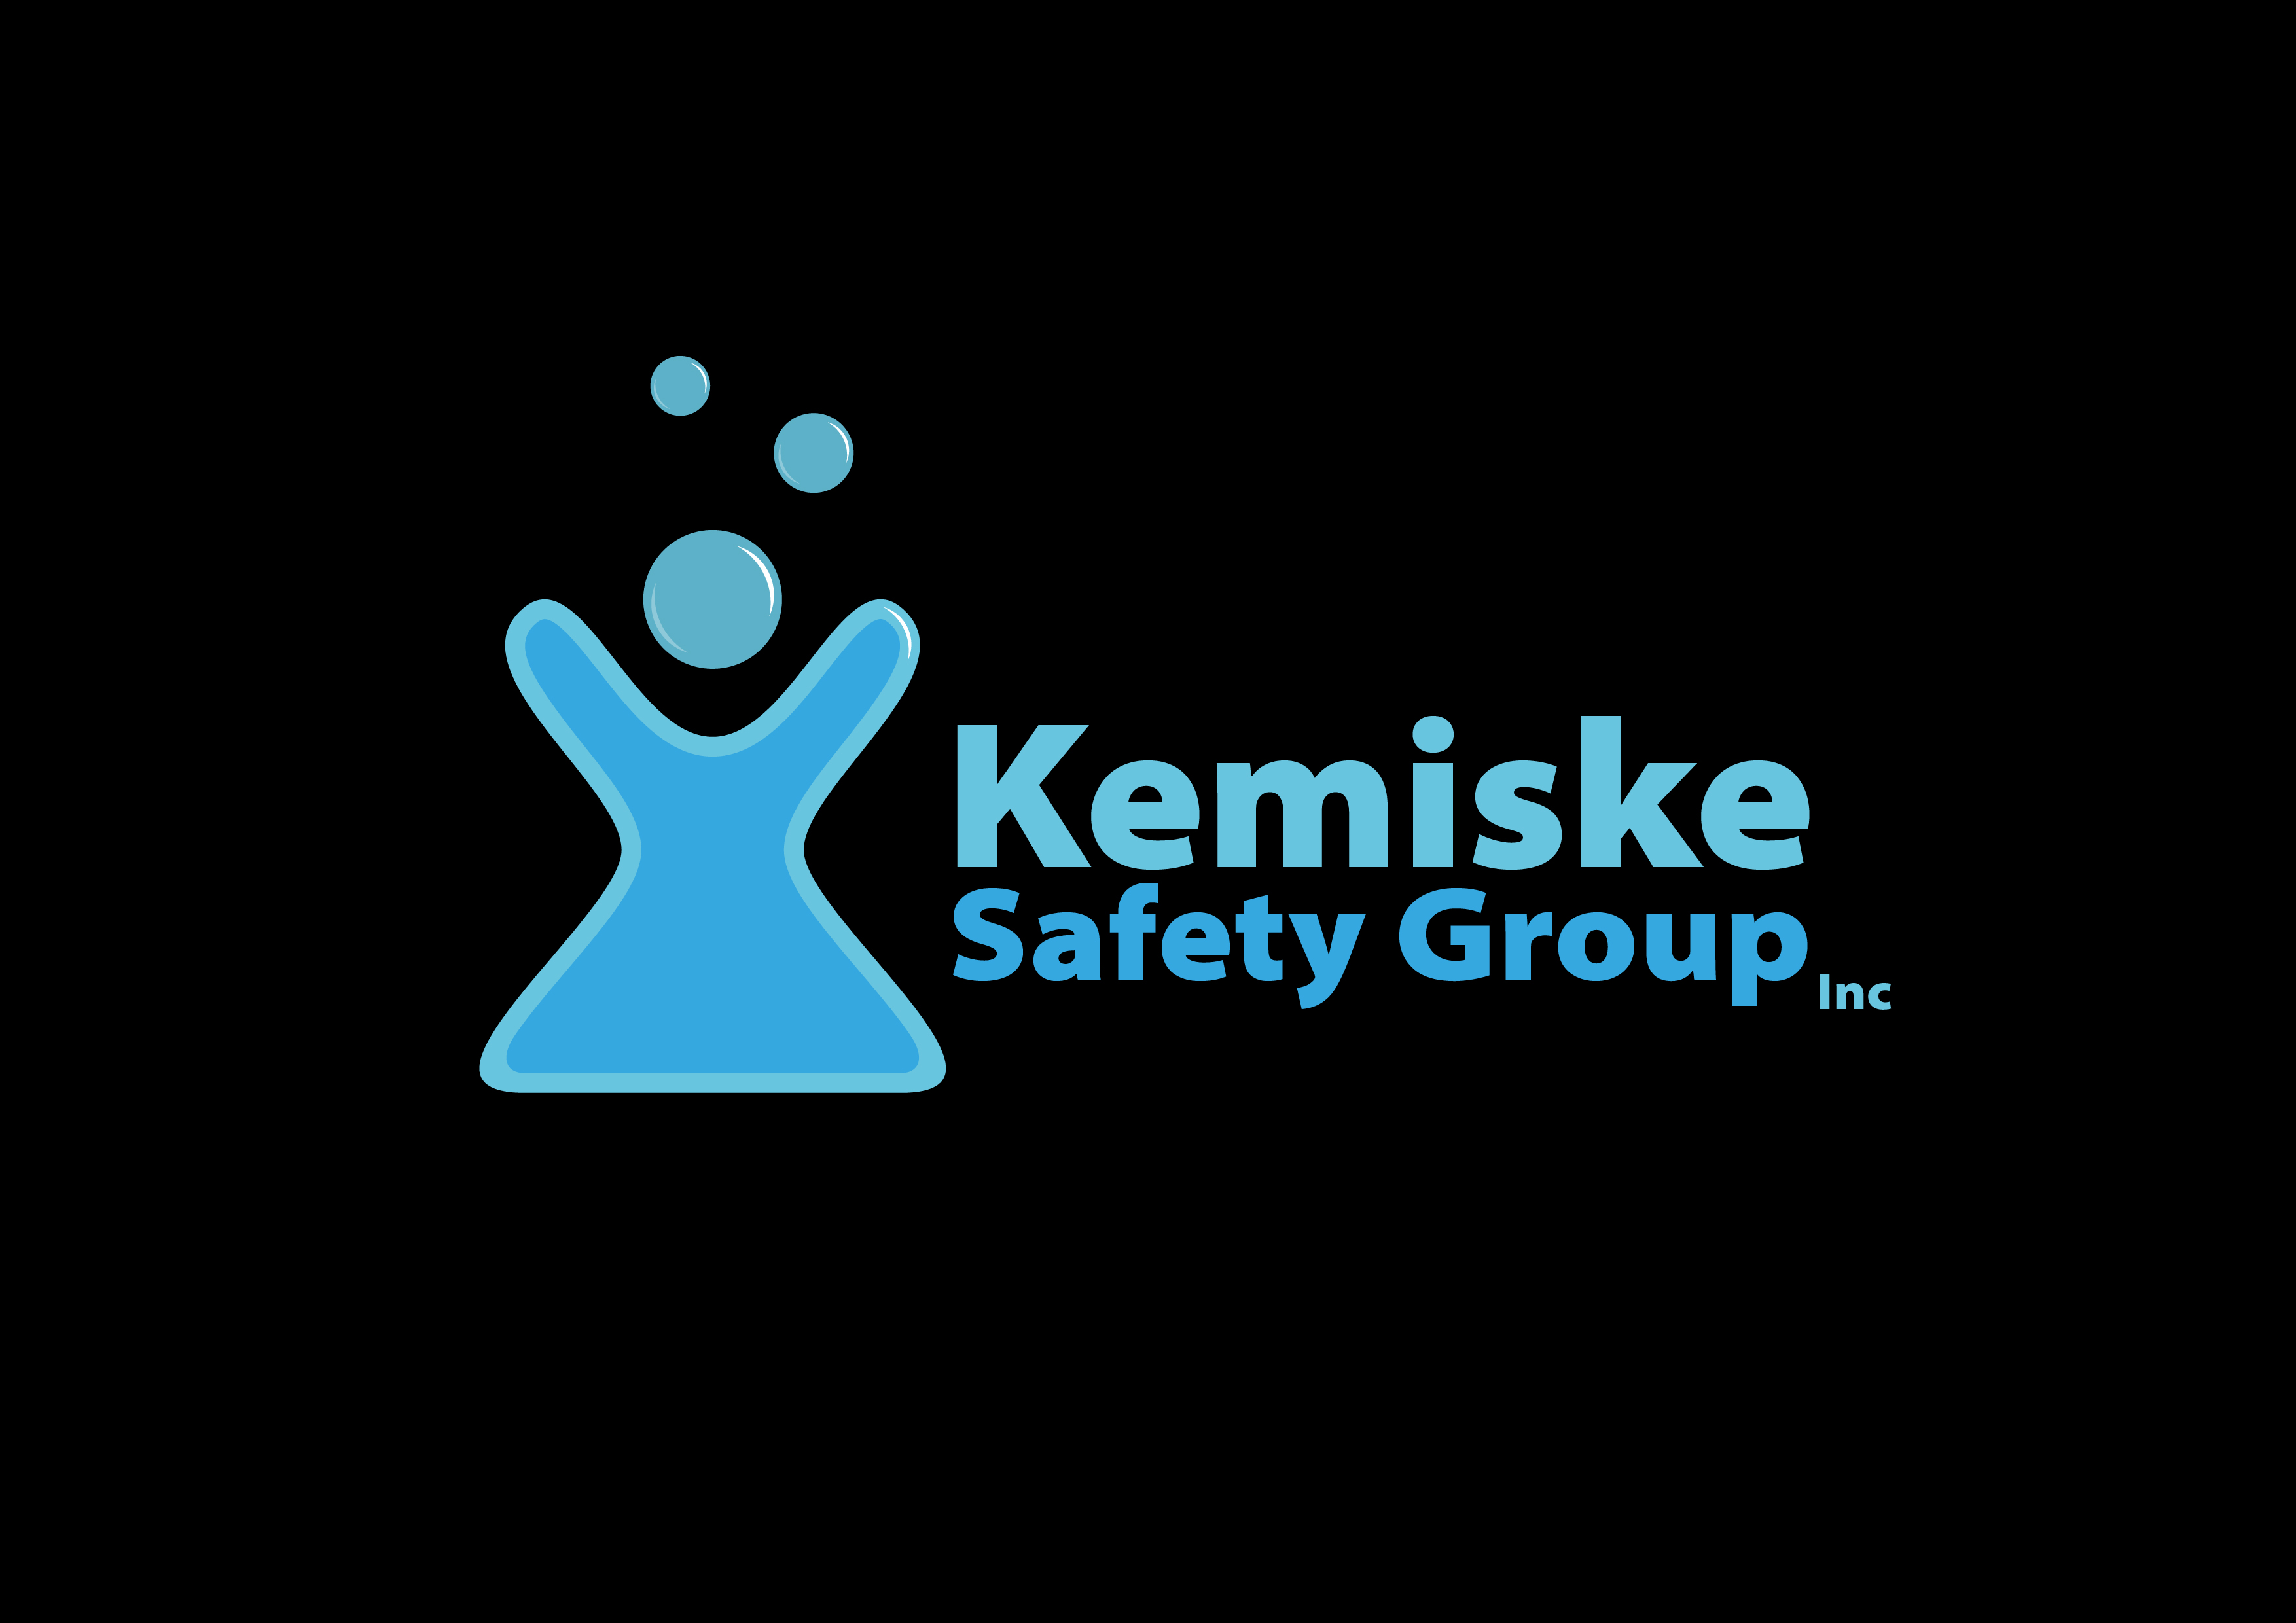 Logo Design by 3draw - Entry No. 155 in the Logo Design Contest New Logo Design for Kemiske Safety Group Inc..